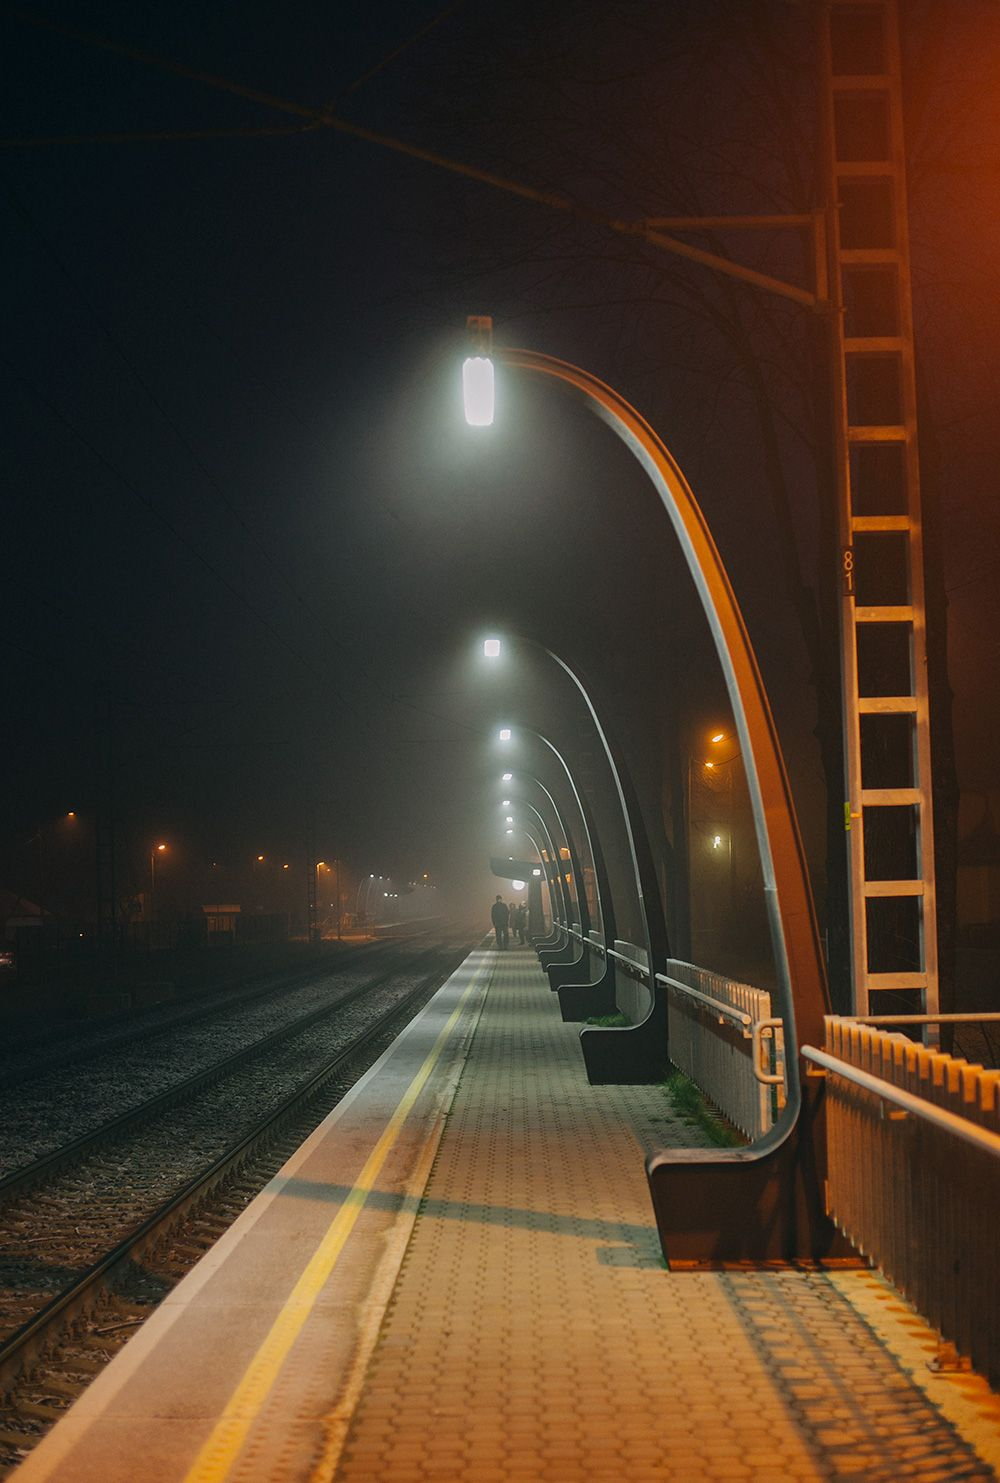 Great Shot Click Pinterest Ghost Photos - City streets glow in eerie night time photographs by andreas levers